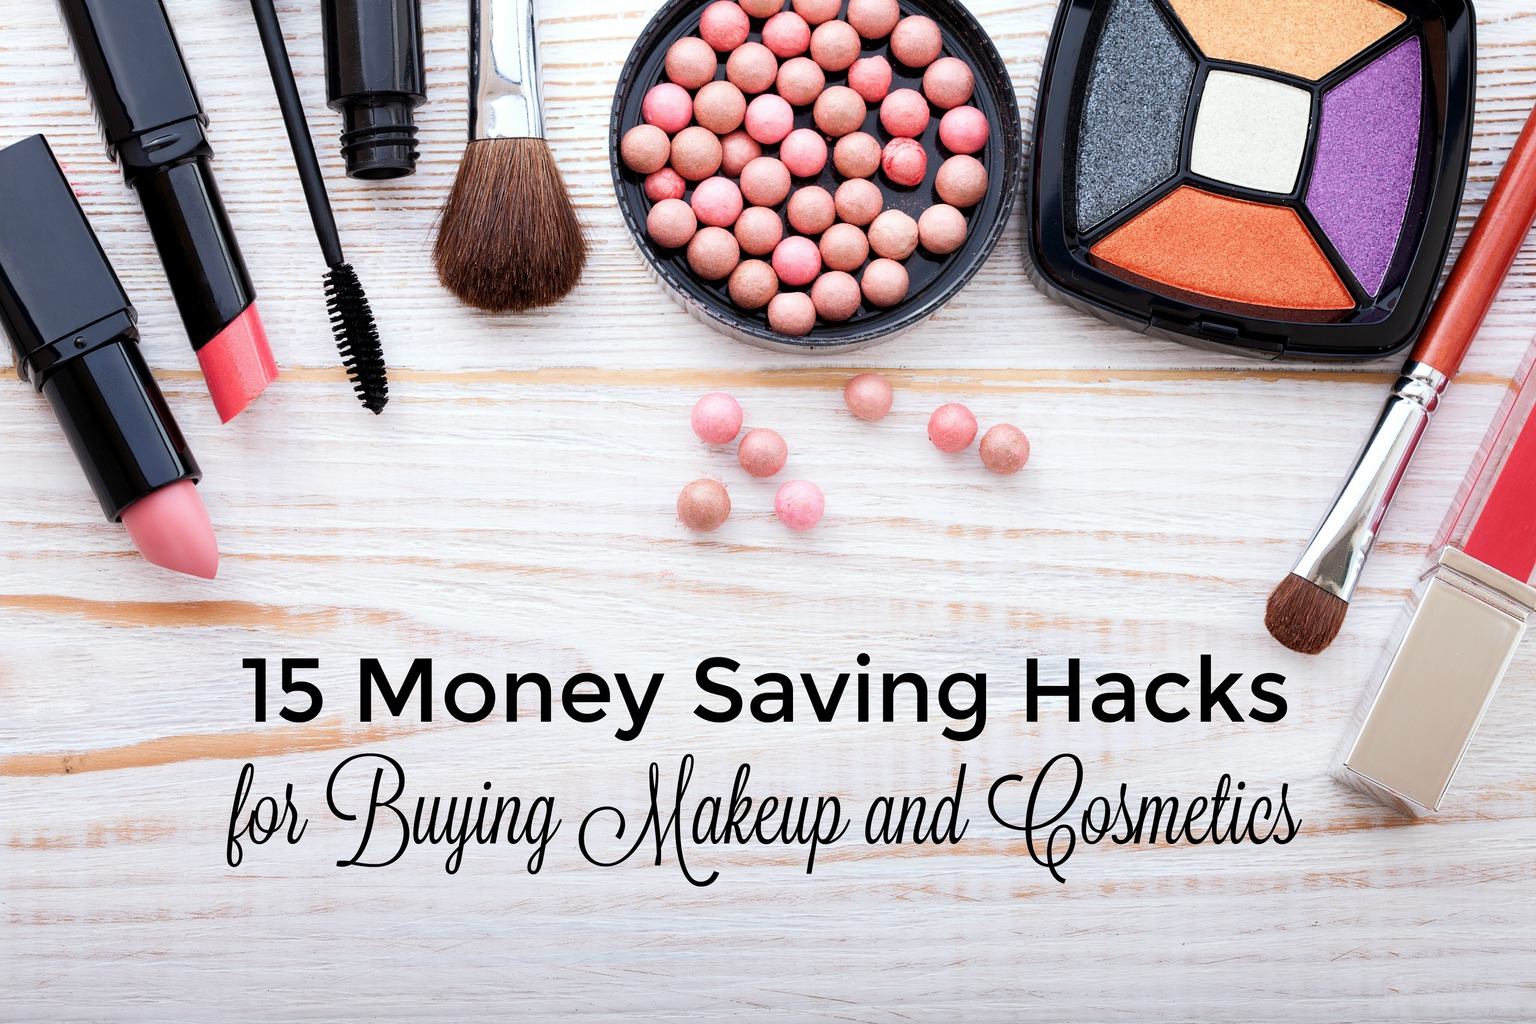 15 Easy Ways to Save Money on Makeup and Cosmetics